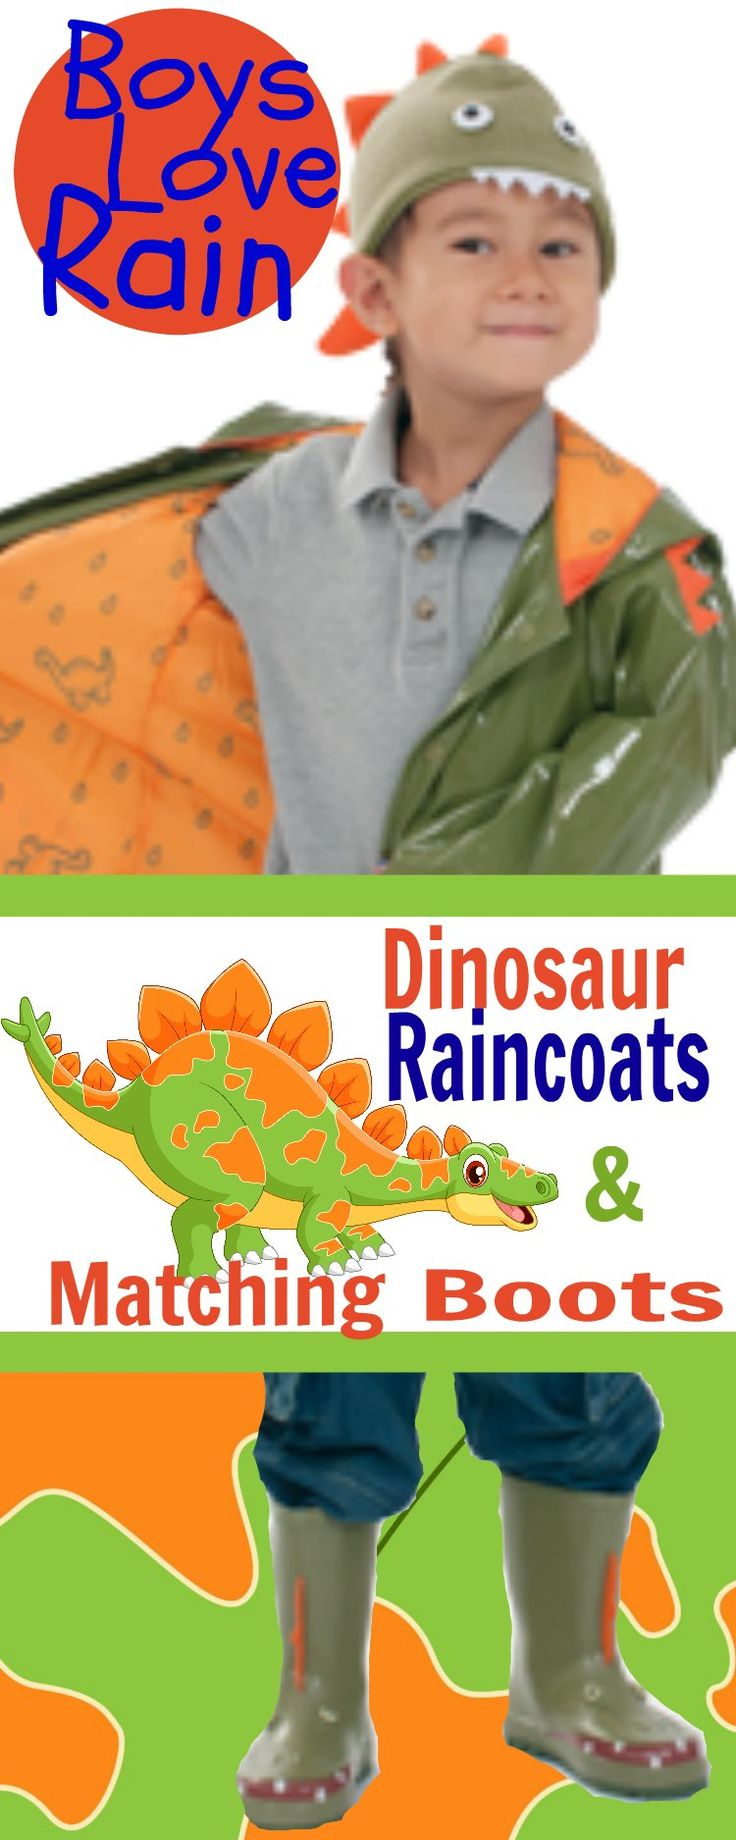 Dinosaur Children Raincoats with Matching Boots. Watch out neighbors, here comes the dinosaurs!